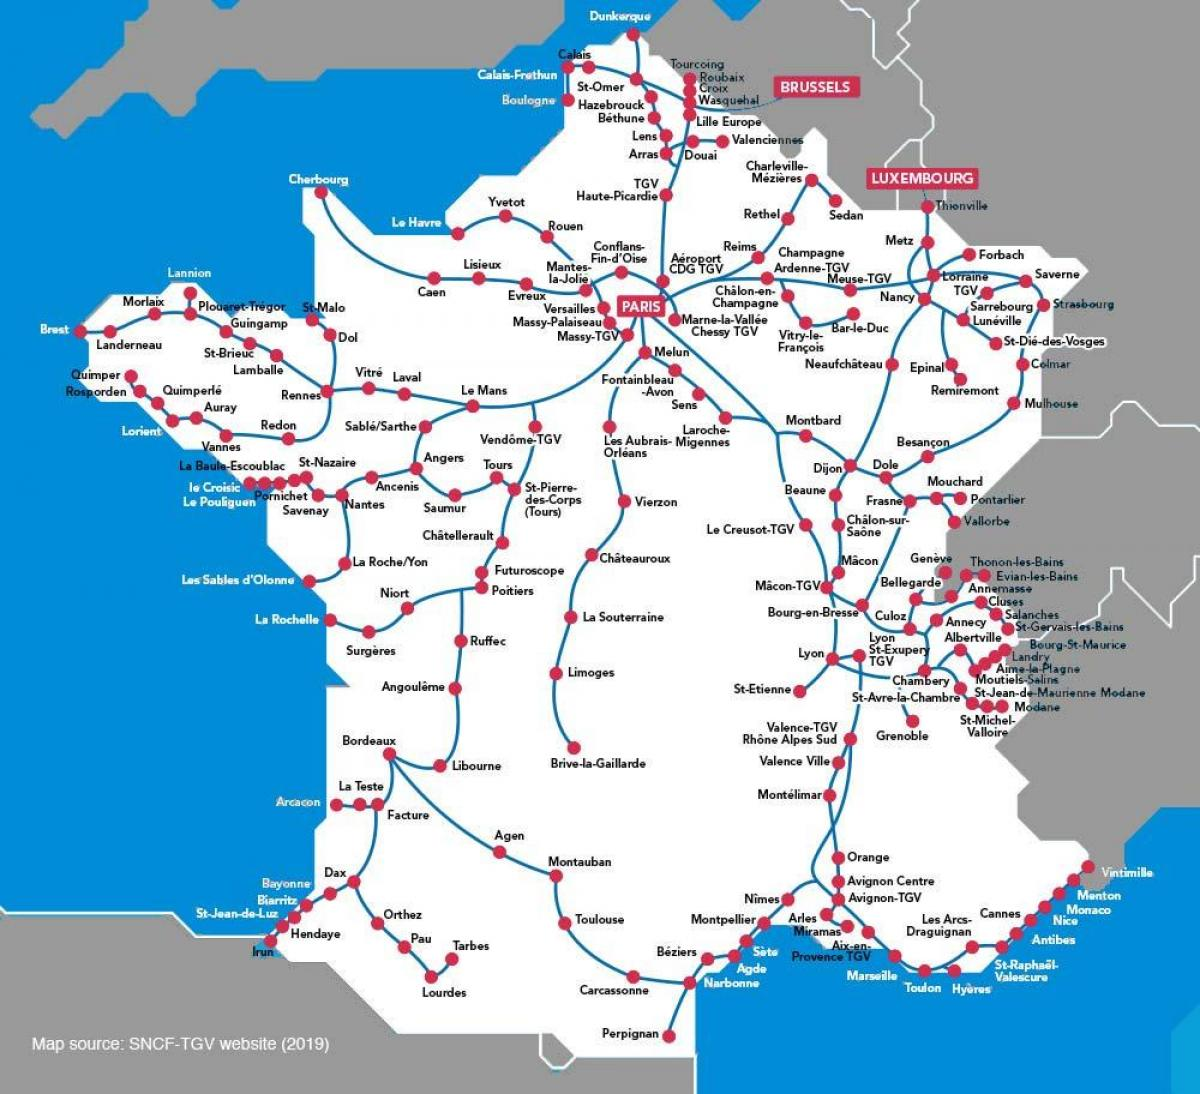 map of France tgv routes